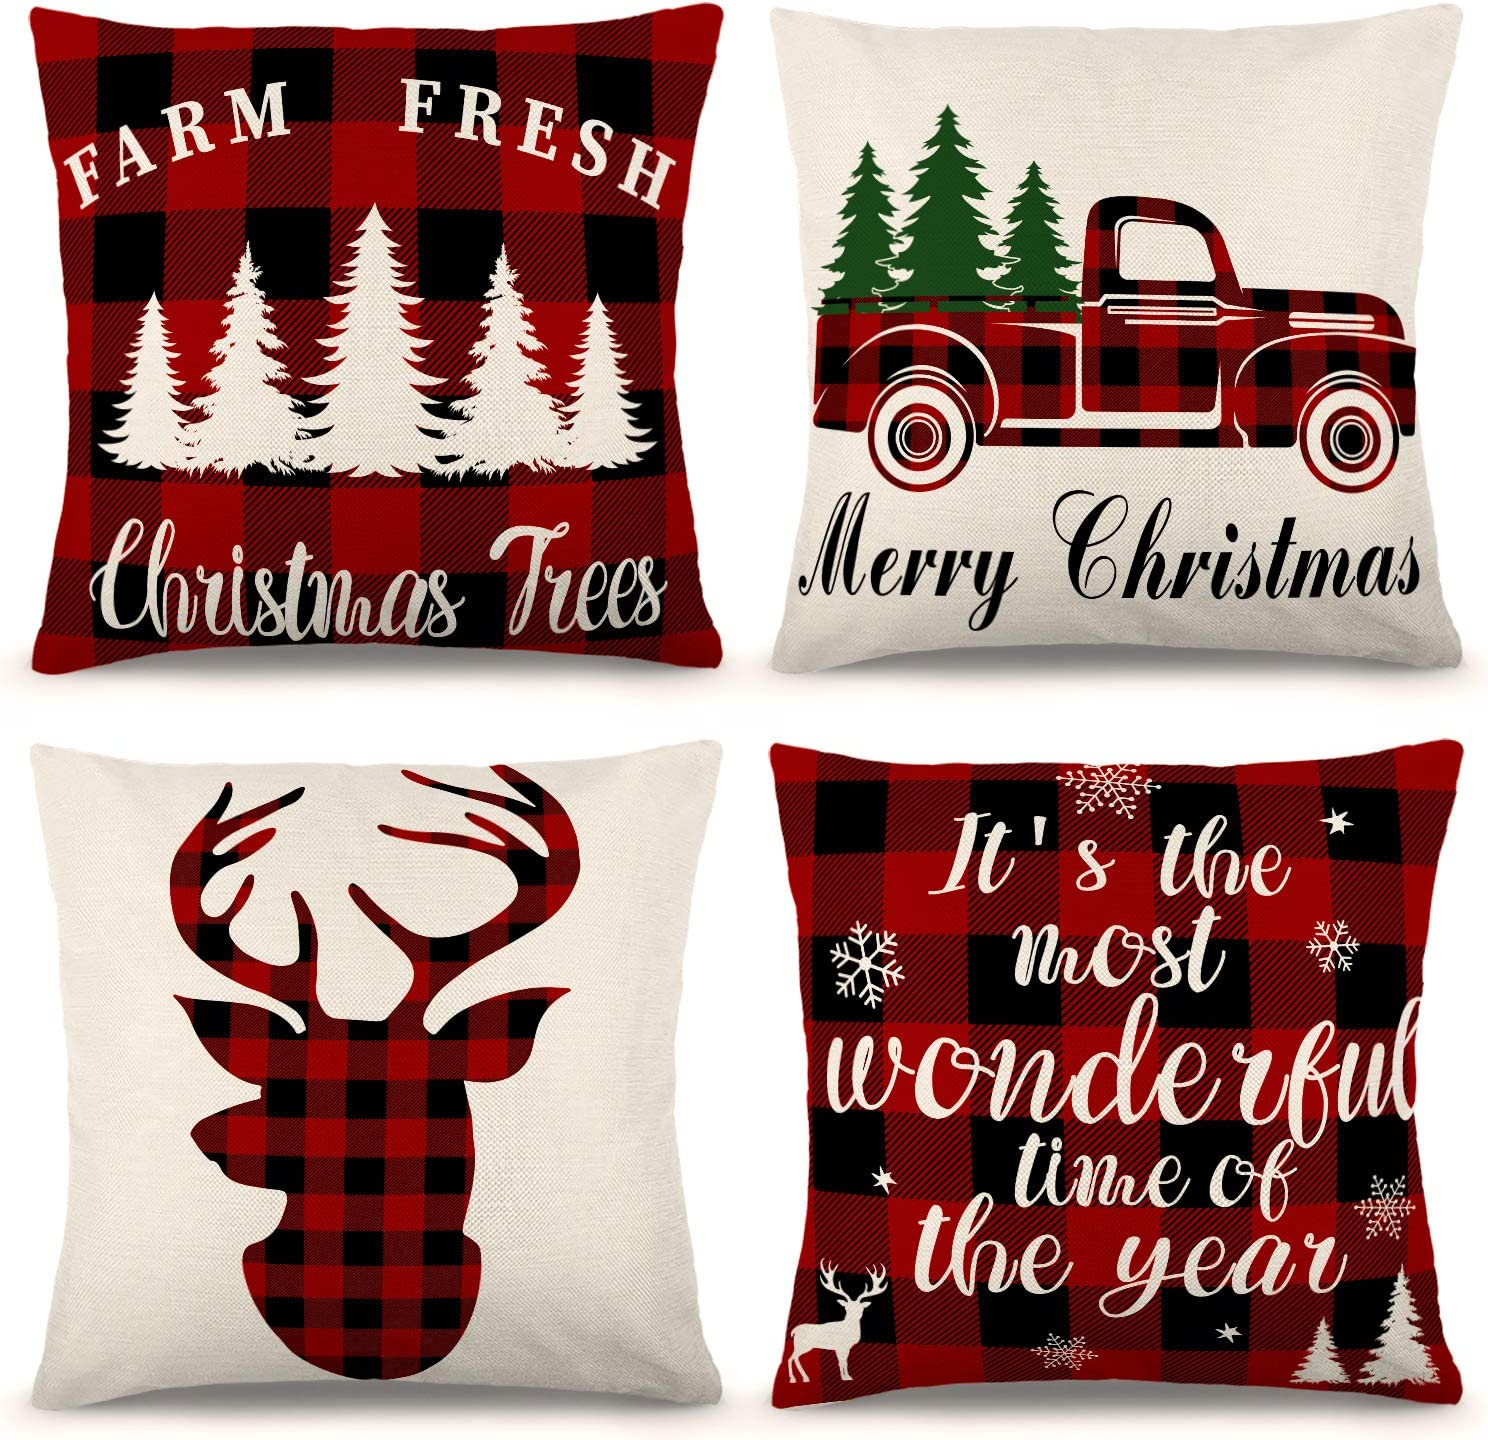 ZJHAI Christmas Pillow Covers 18×18 Inch Set of 4 Farmhouse Black and Red Buffalo Plaid Pillow Covers Holiday Rustic Linen Pillow Case for Sofa Couch Christmas Decorations Throw Pillow Covers